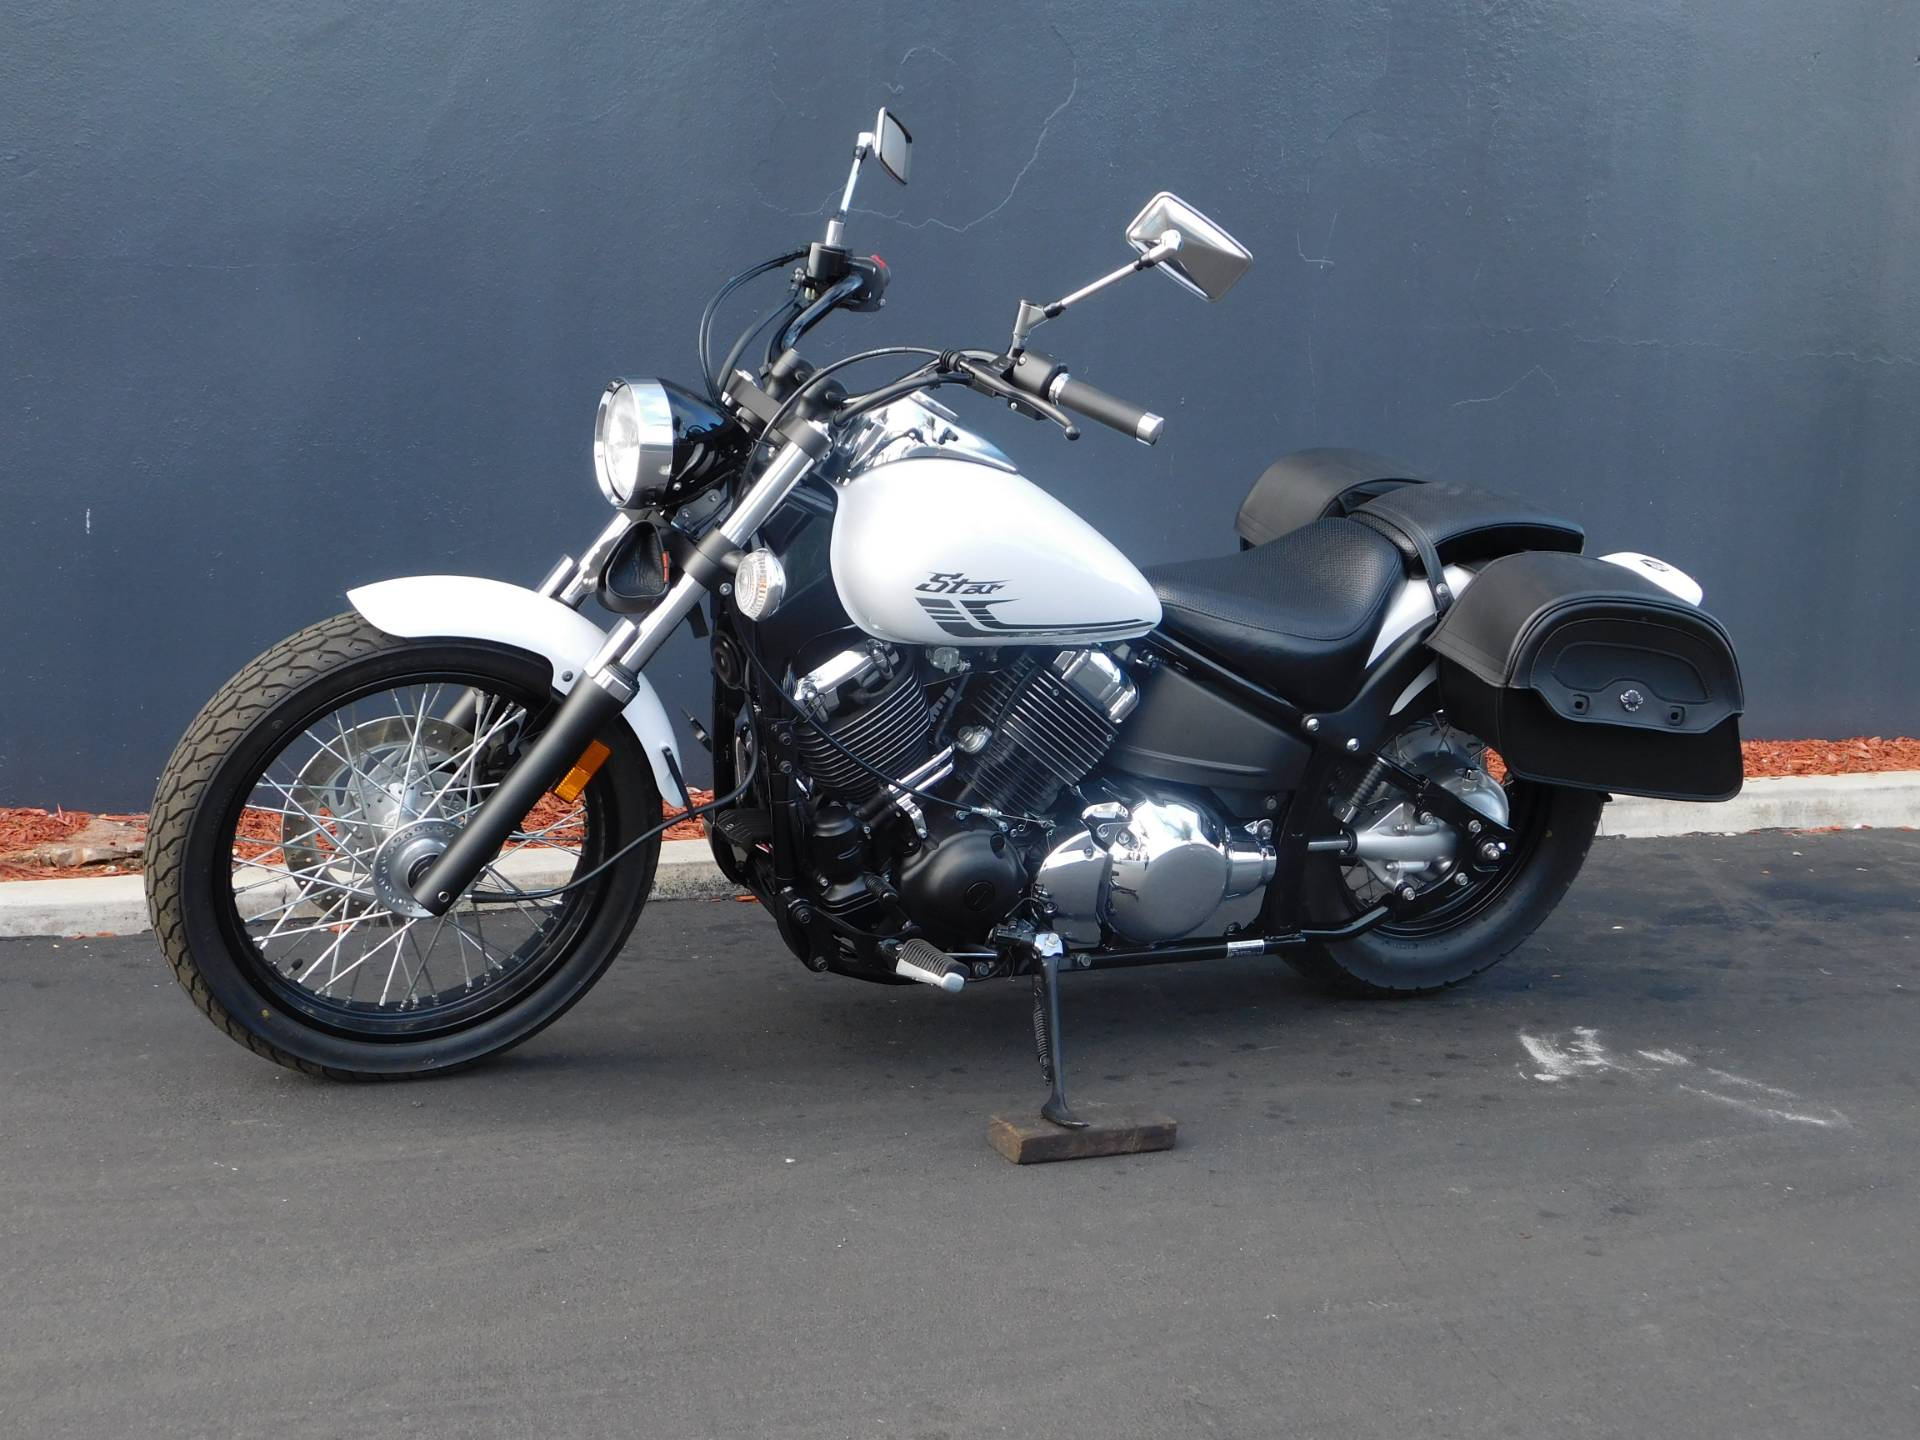 2016 Yamaha V Star 650 Custom in Chula Vista, California - Photo 14